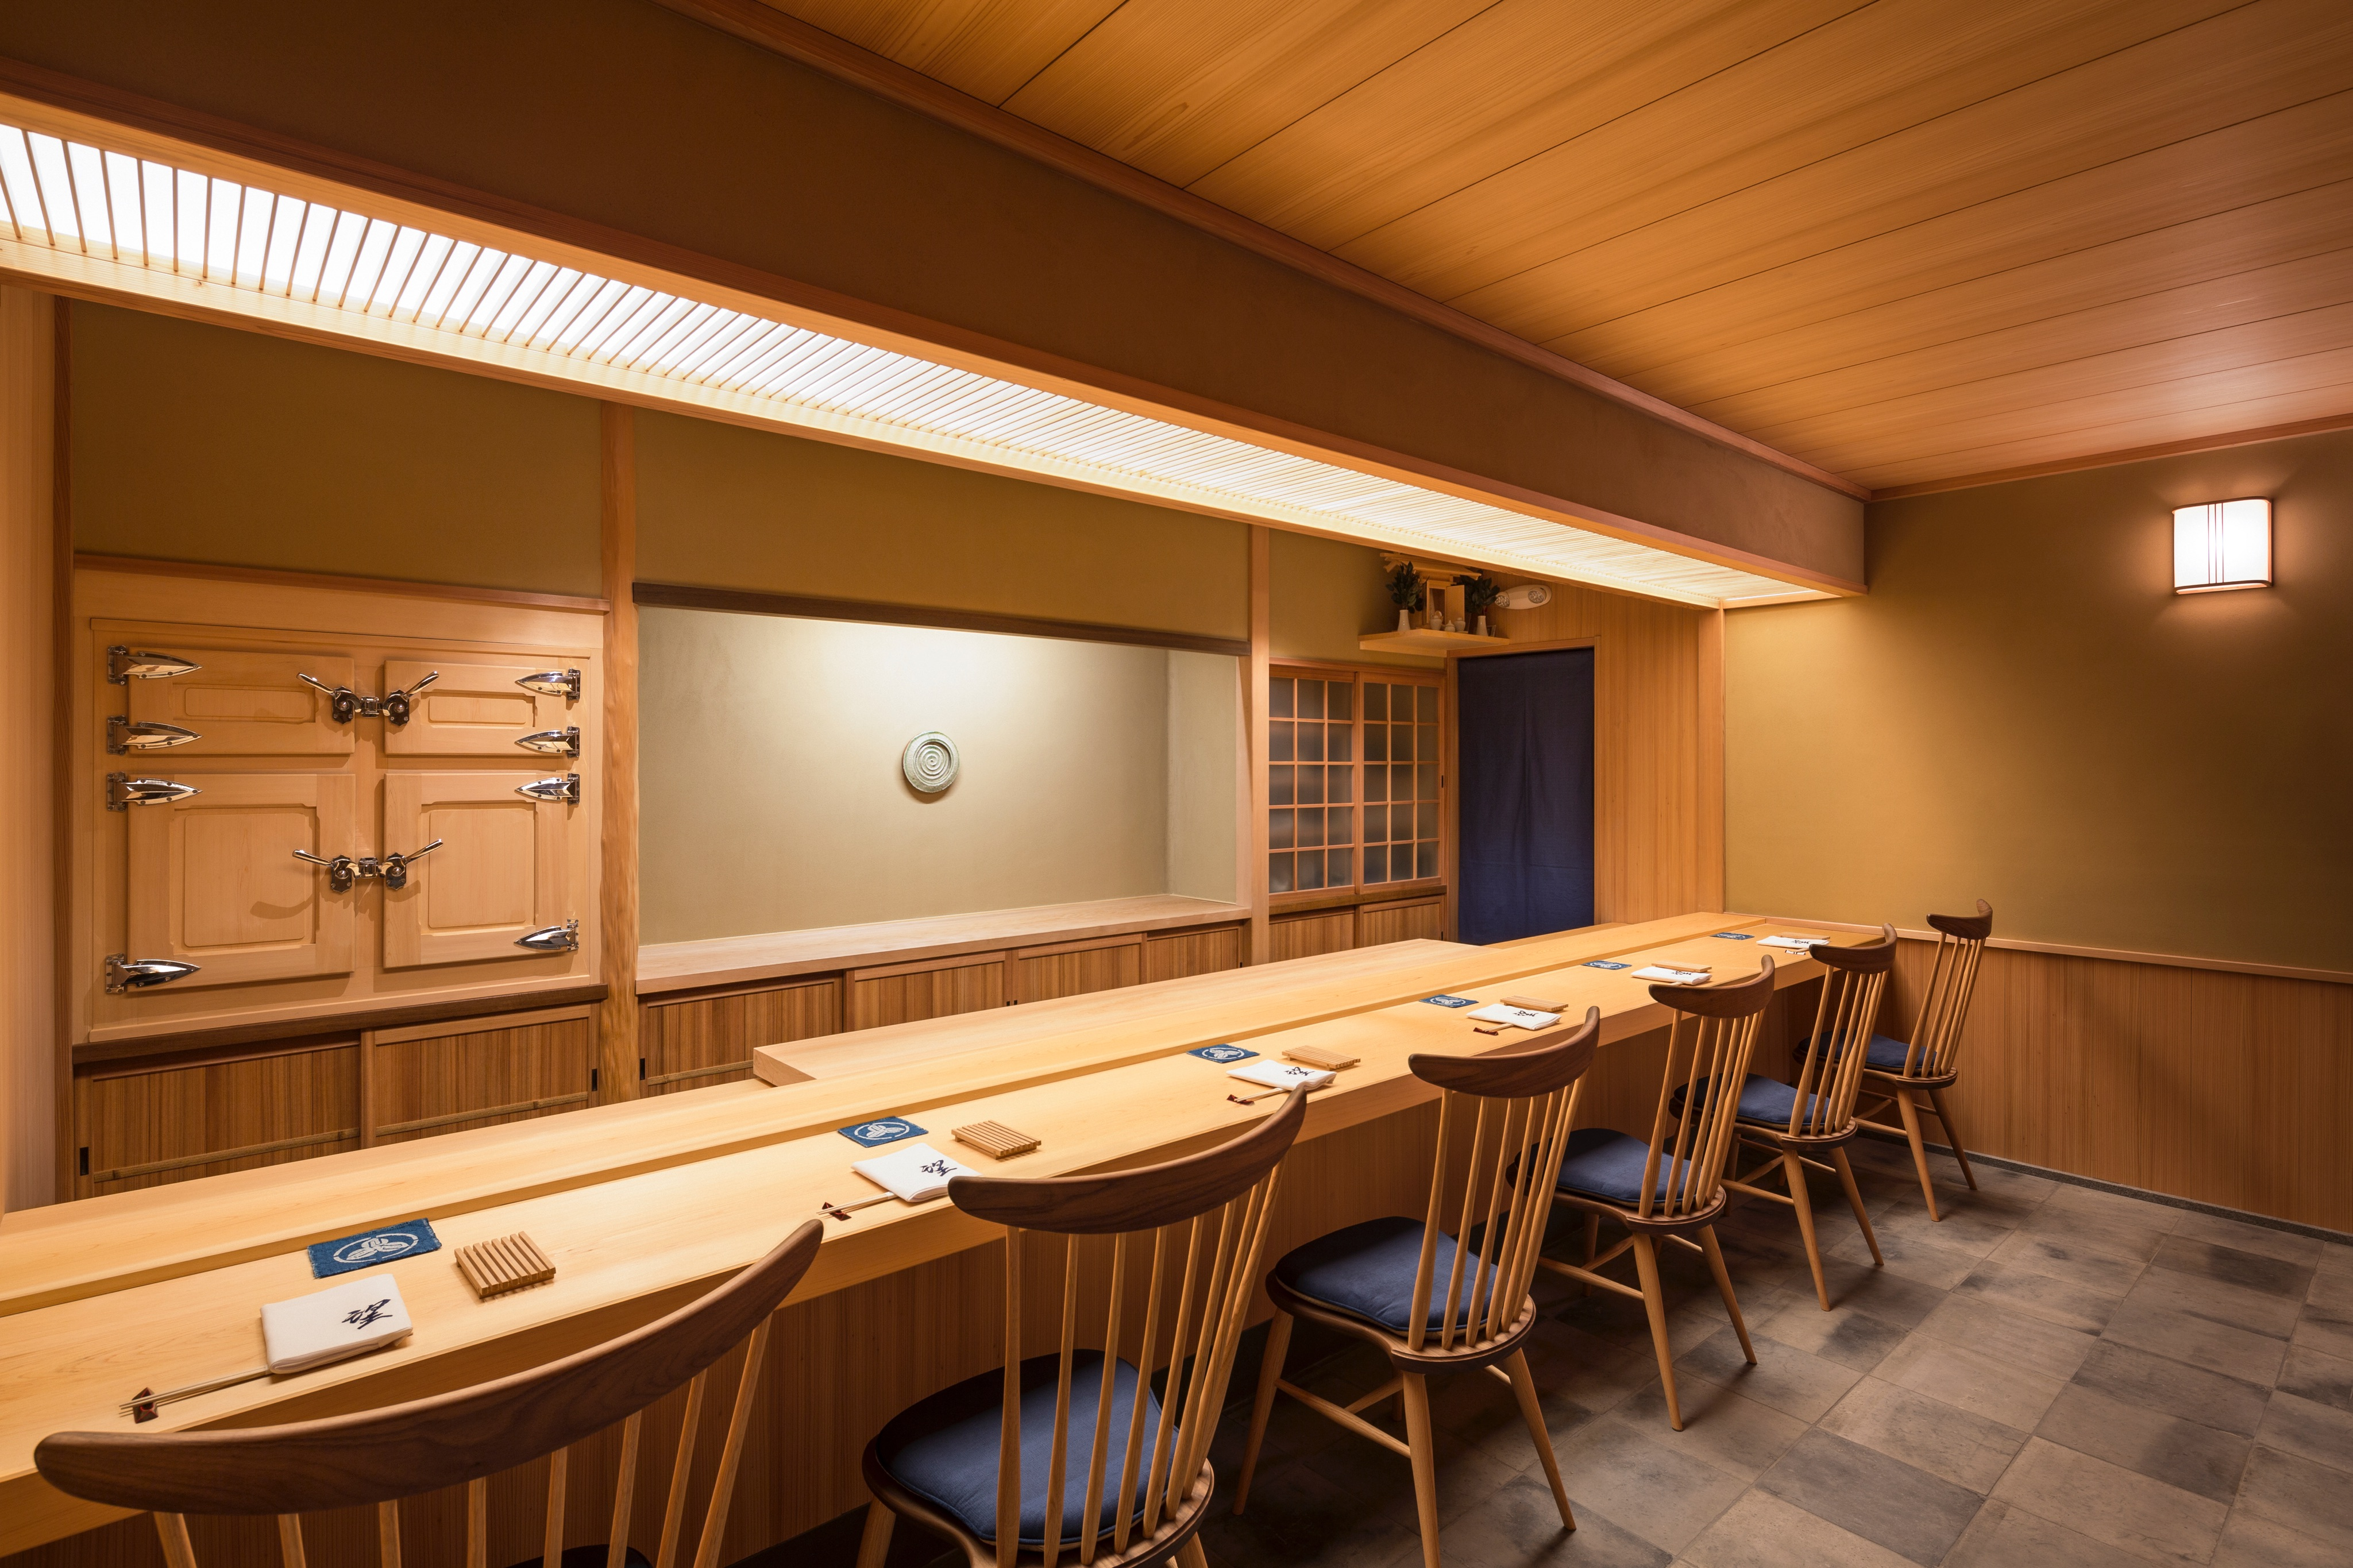 A blonde wood-bedecked sushi bar with six seats